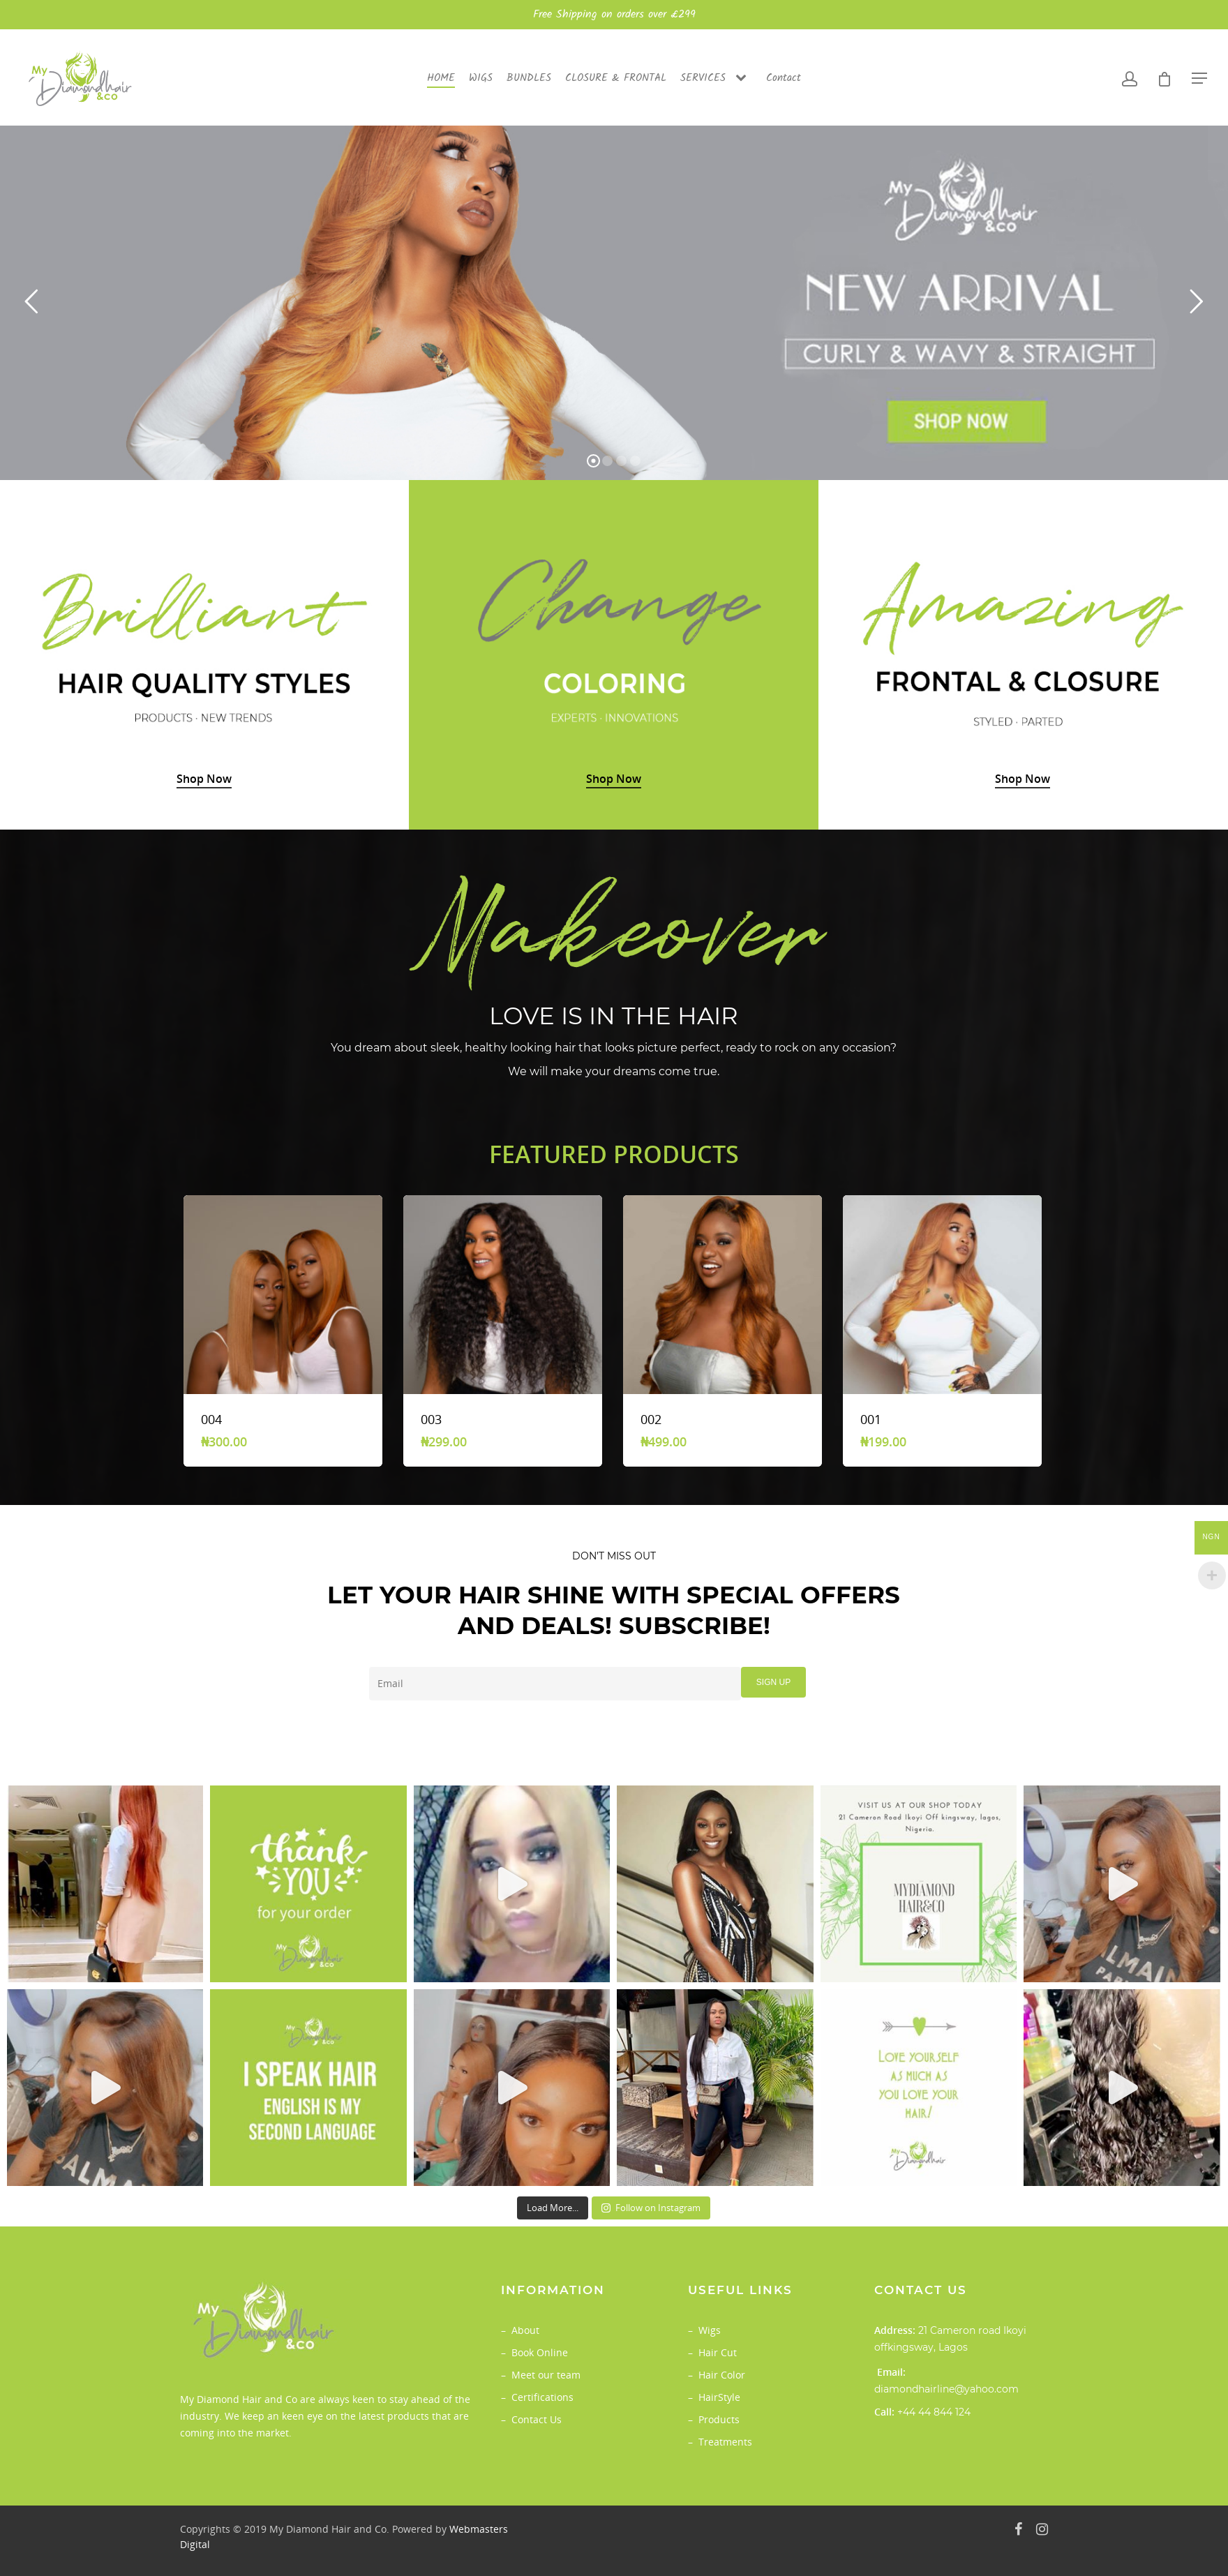 Online Shopping Website development for my diamond hair and co